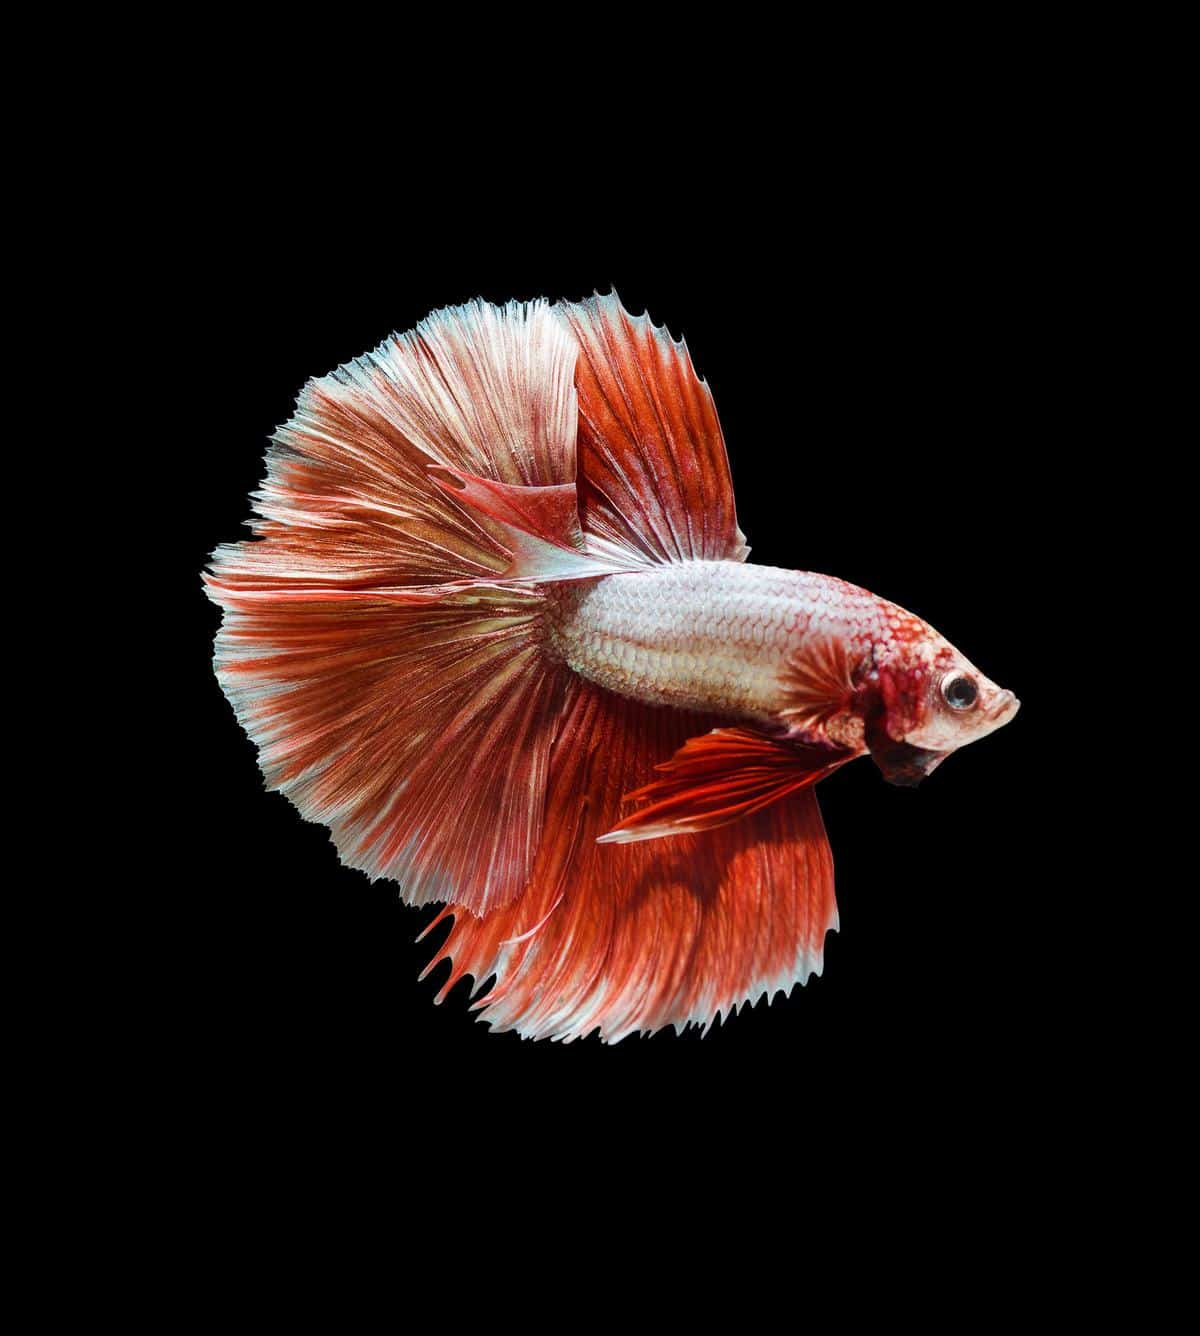 Spoonhead Betta Fish in black background